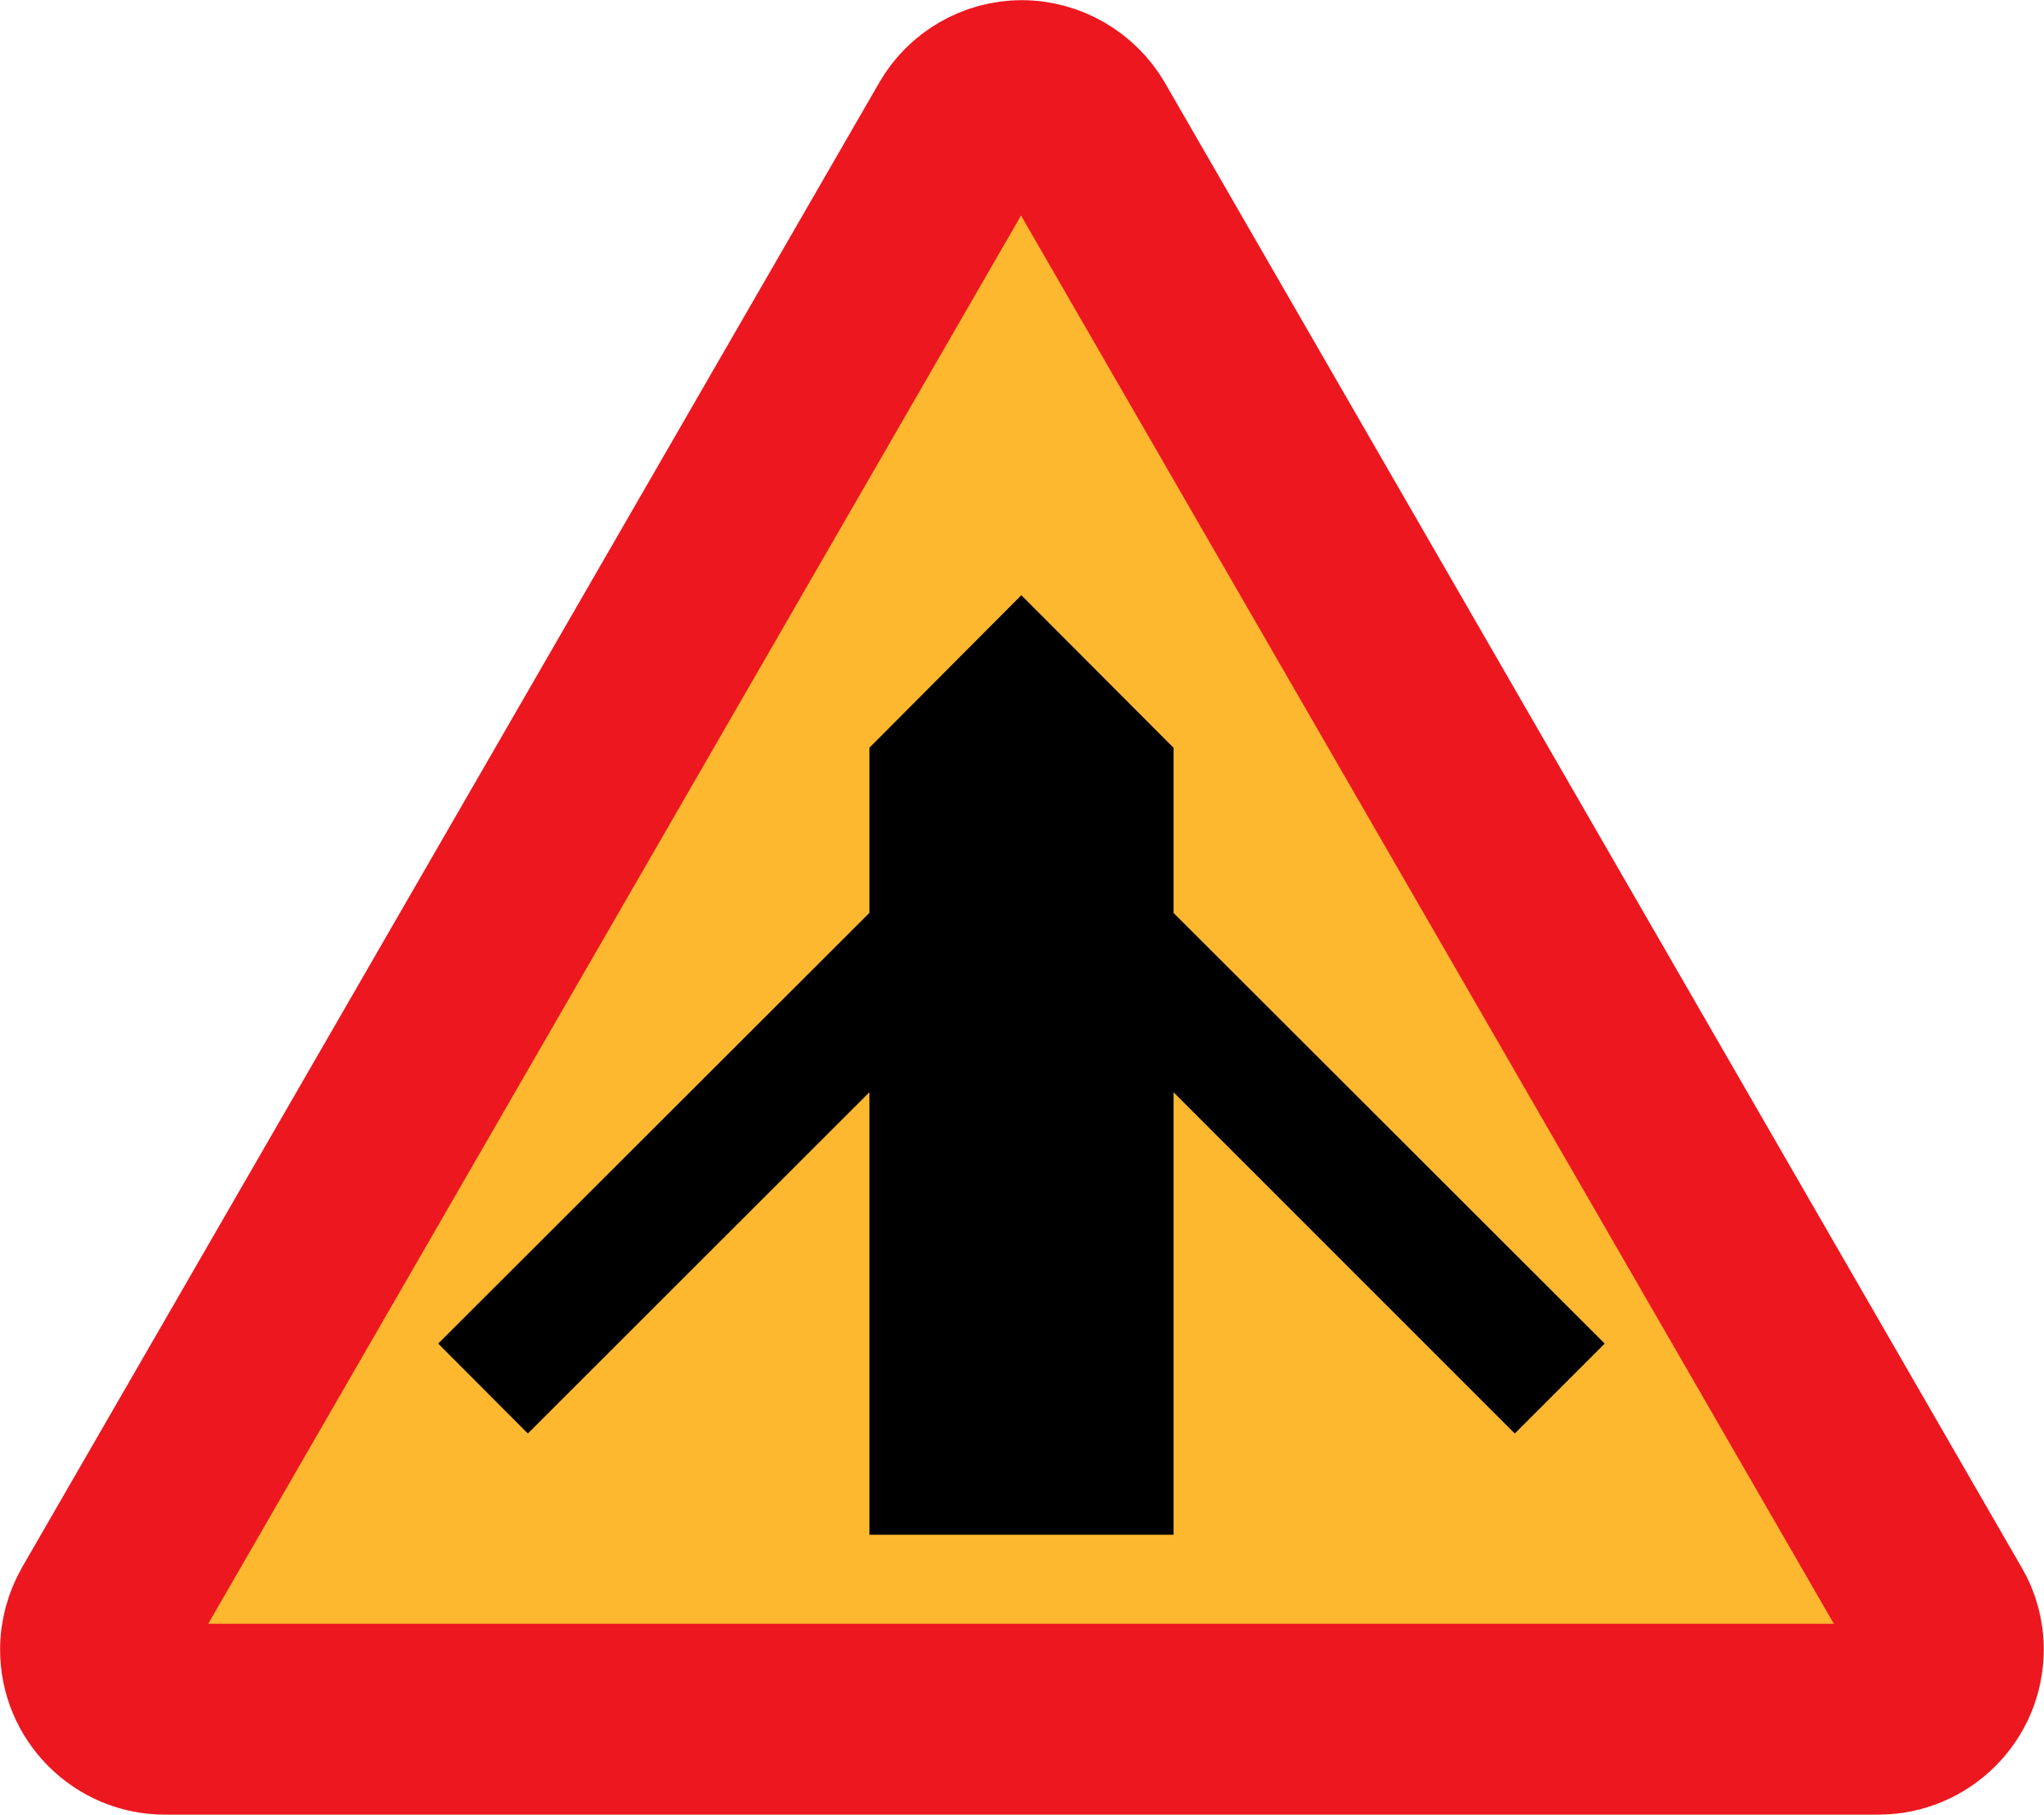 Roadlayout sign 2 by ryanlerch